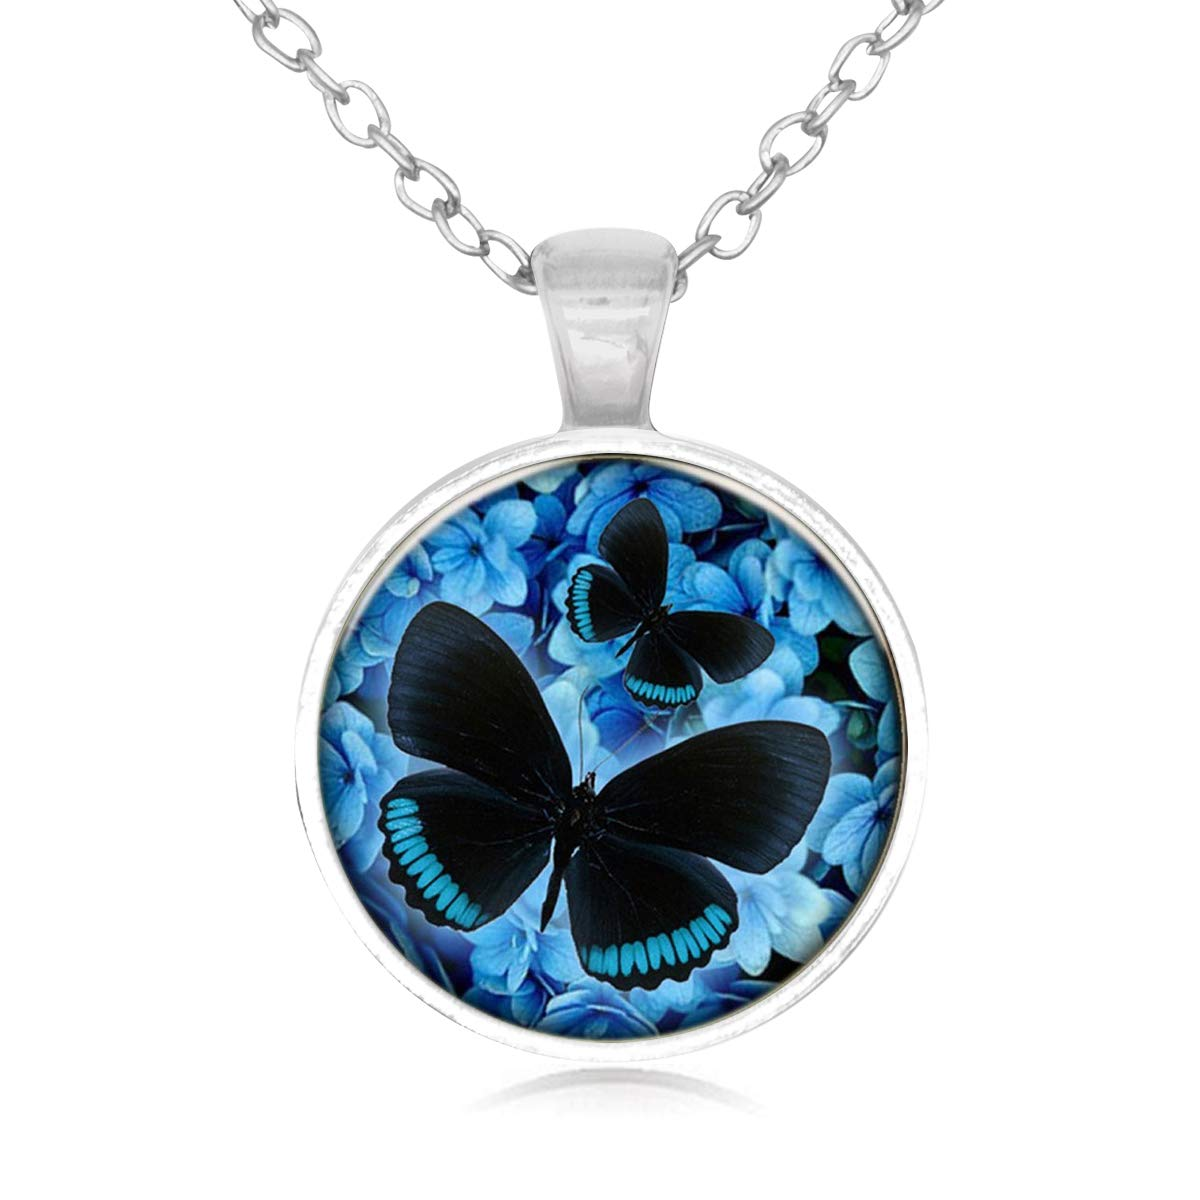 Family Decor Blue Dream Butterfly Pendant Necklace Cabochon Glass Vintage Bronze Chain Necklace Jewelry Handmade